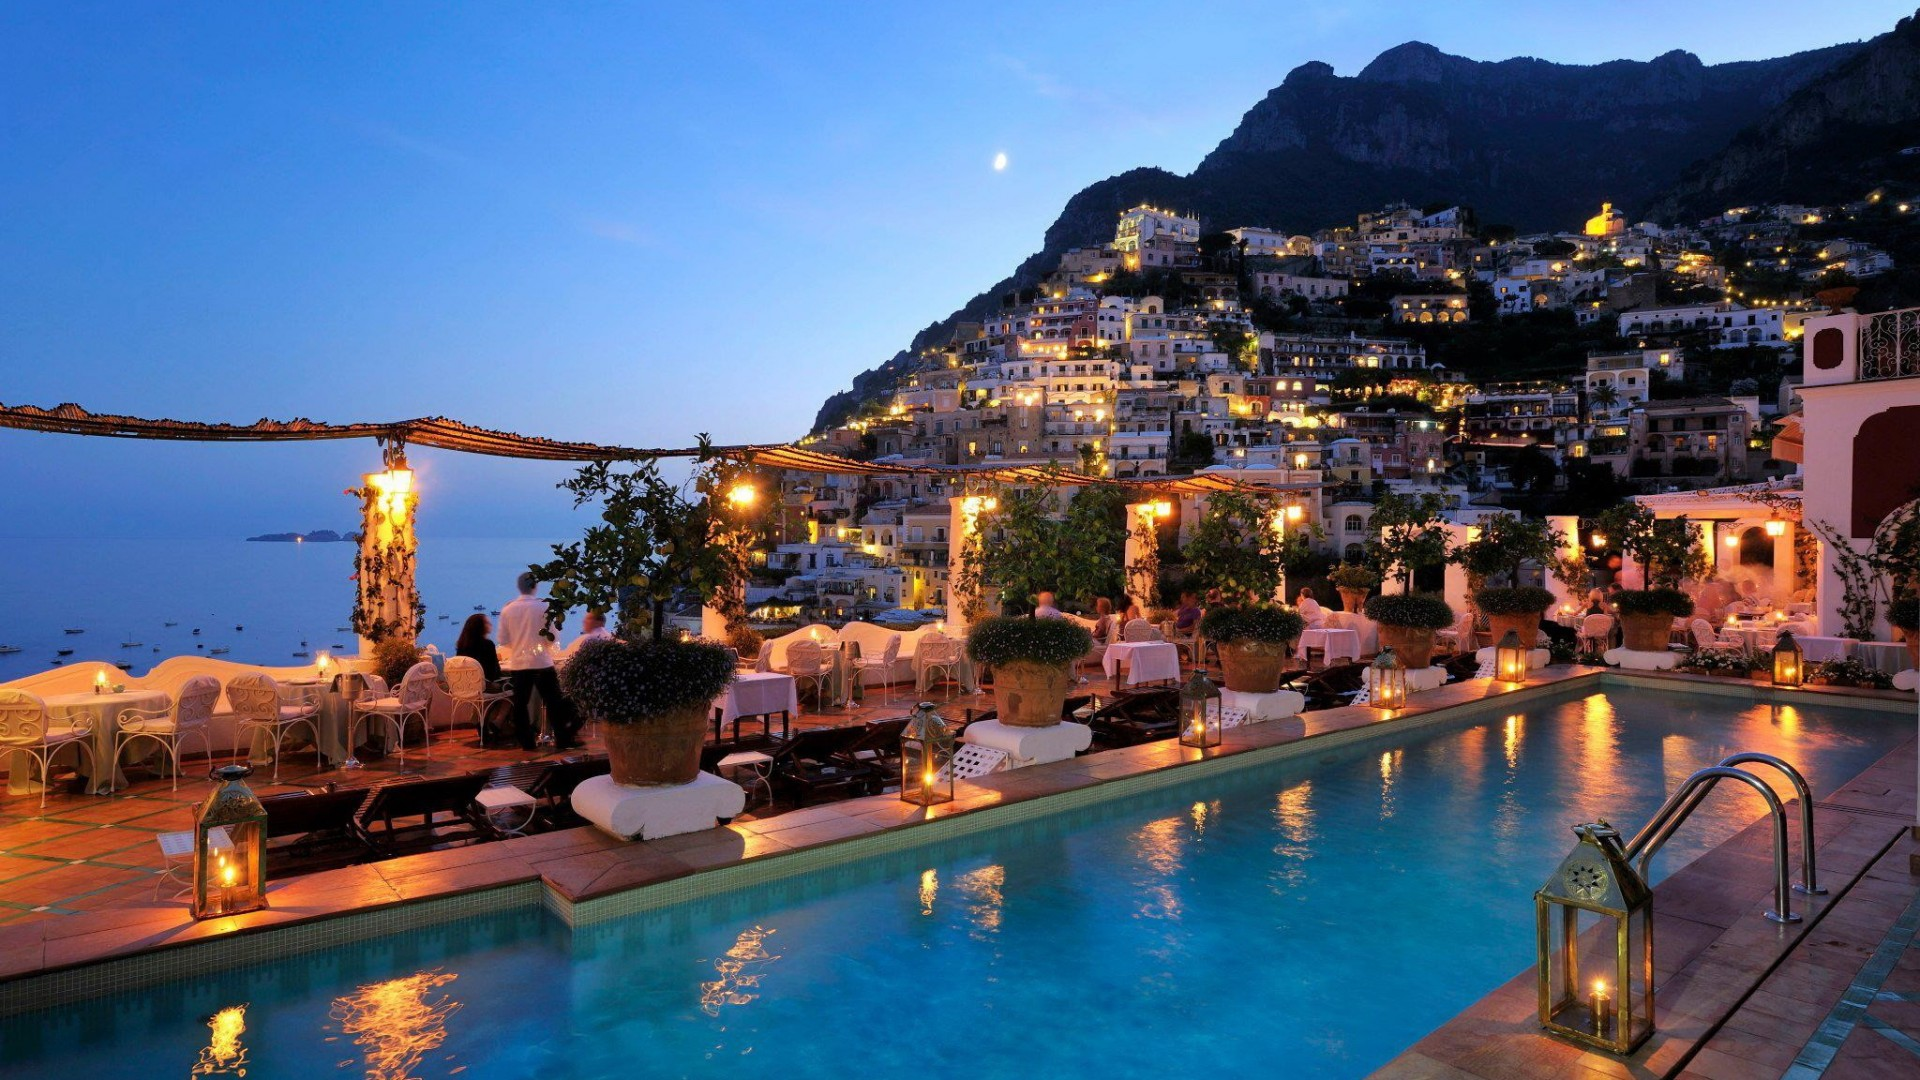 positano-italy-luxury-hotel-evening-pool-world-1080x1920